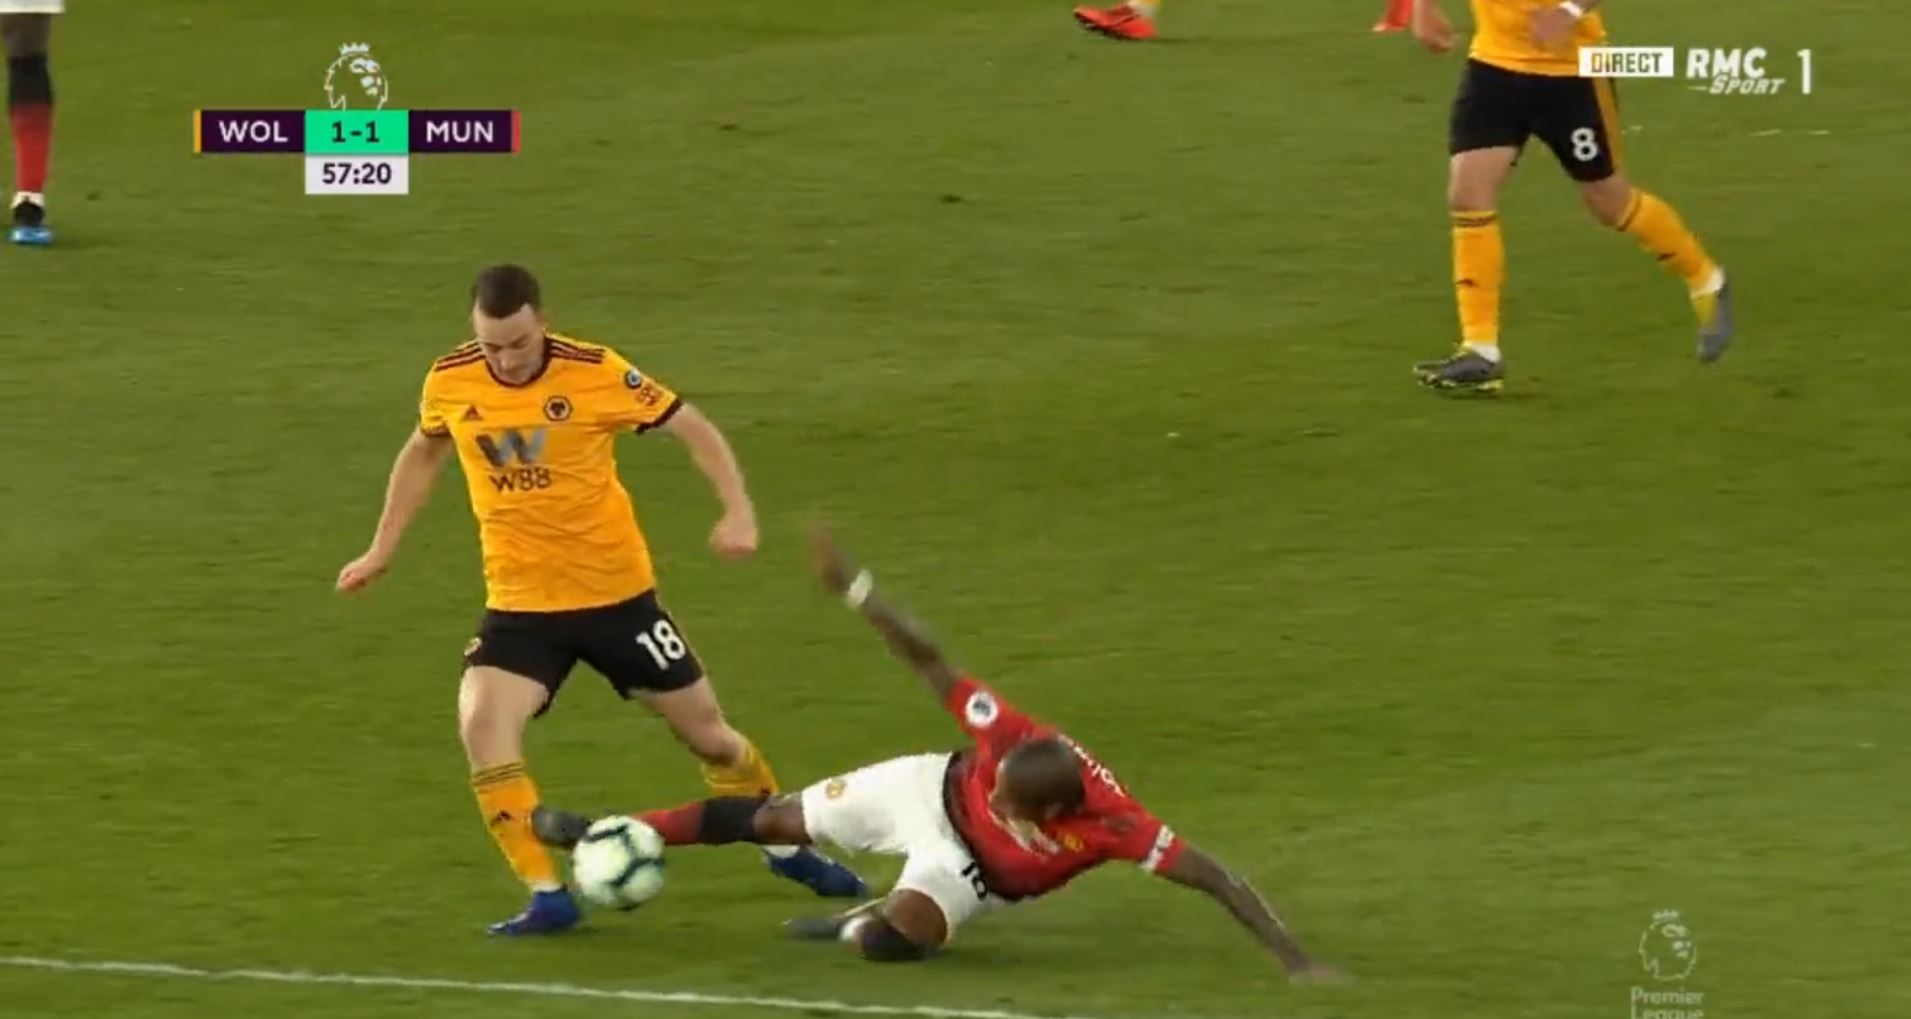 WATCH Ashley Young SENT OFF Against Wolves!